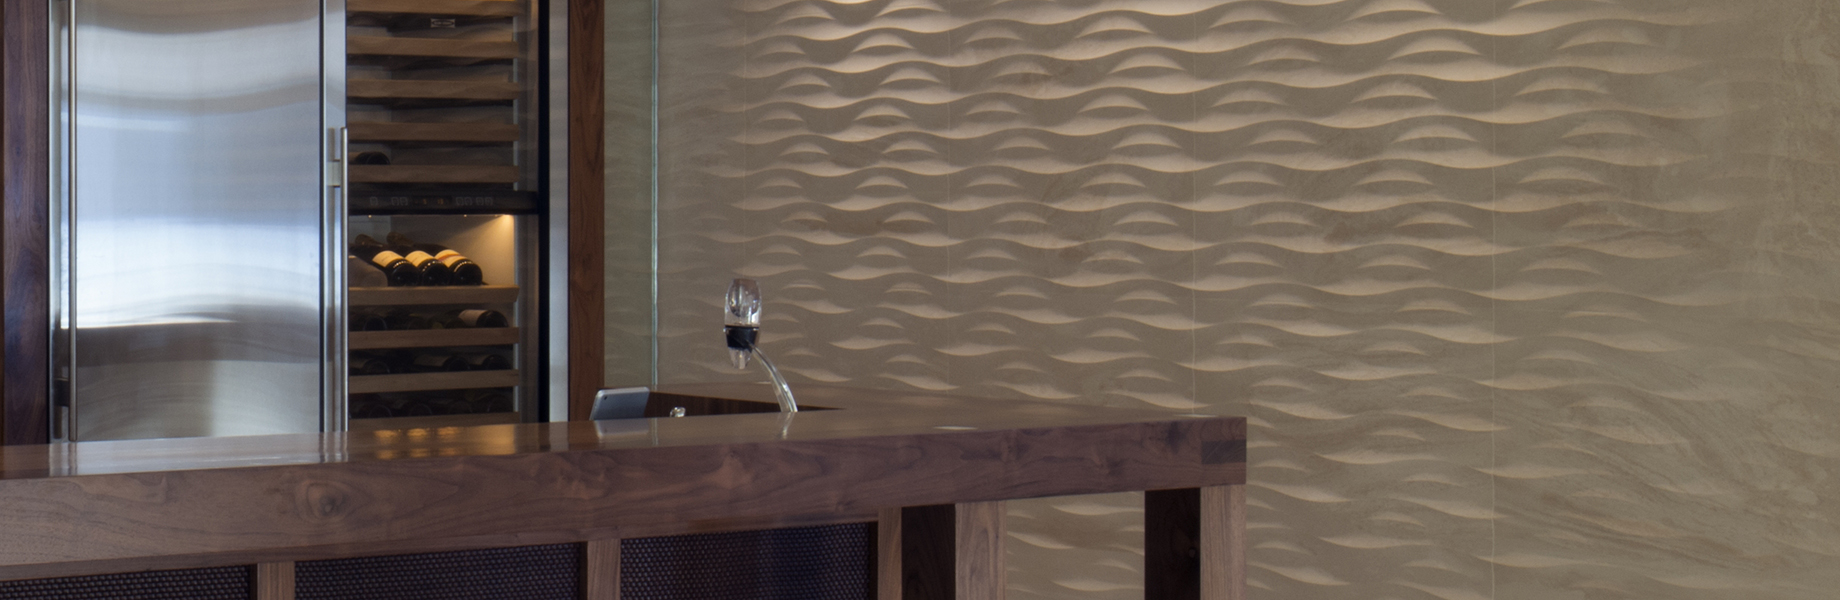 Lithos_Design_fondo_marble_wall_covering